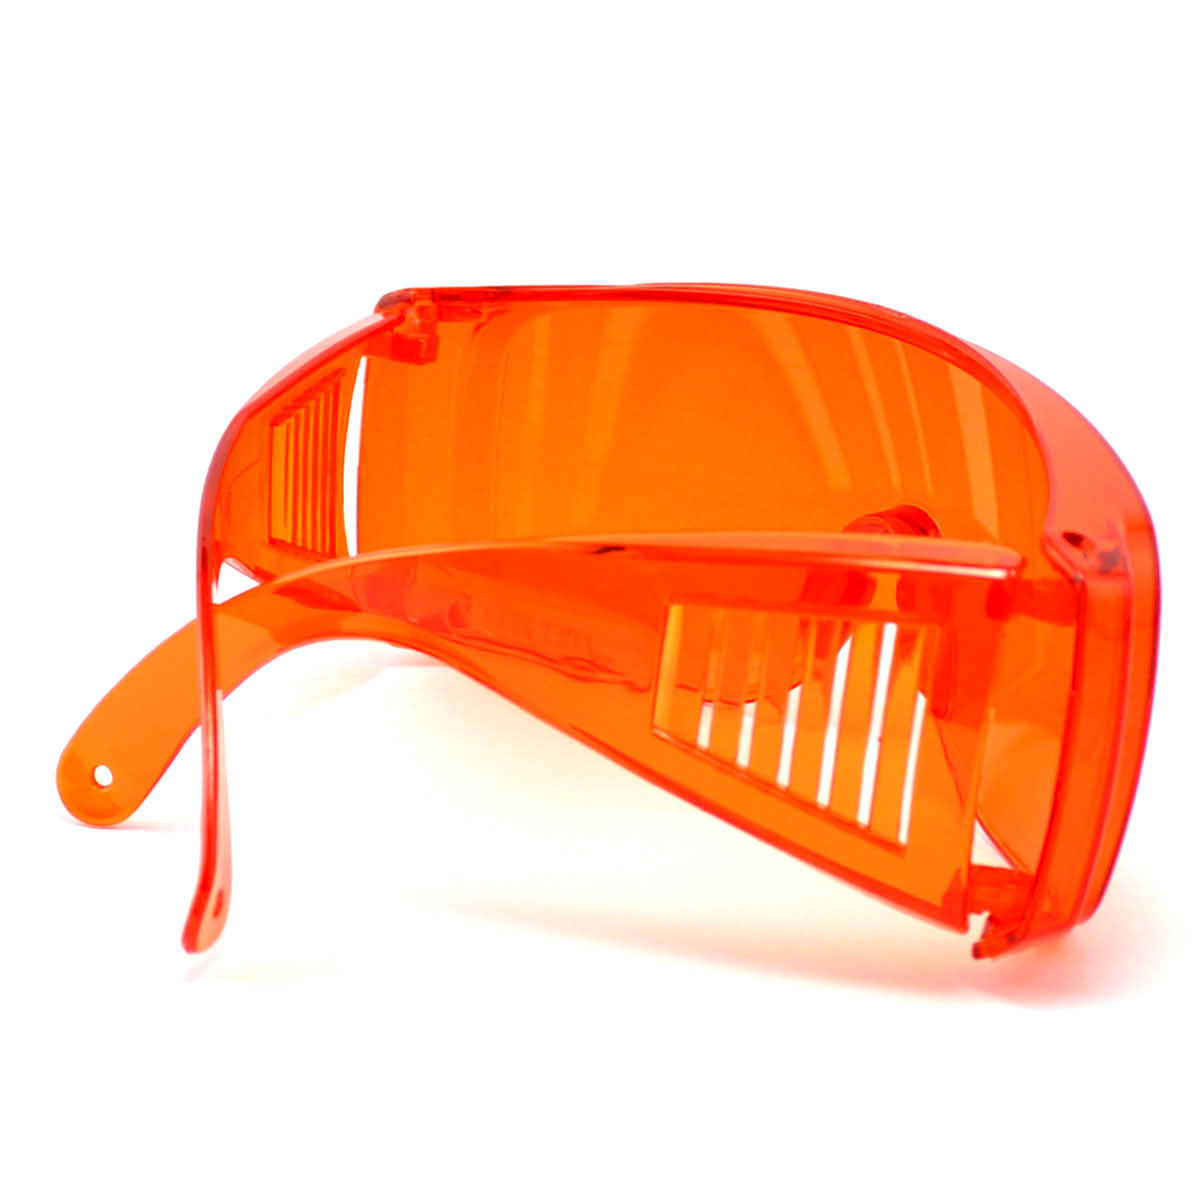 445nm Blue-violet Laser Protective Goggles OD4+ 200-540nm Eye Protection Safety Glasses Orange